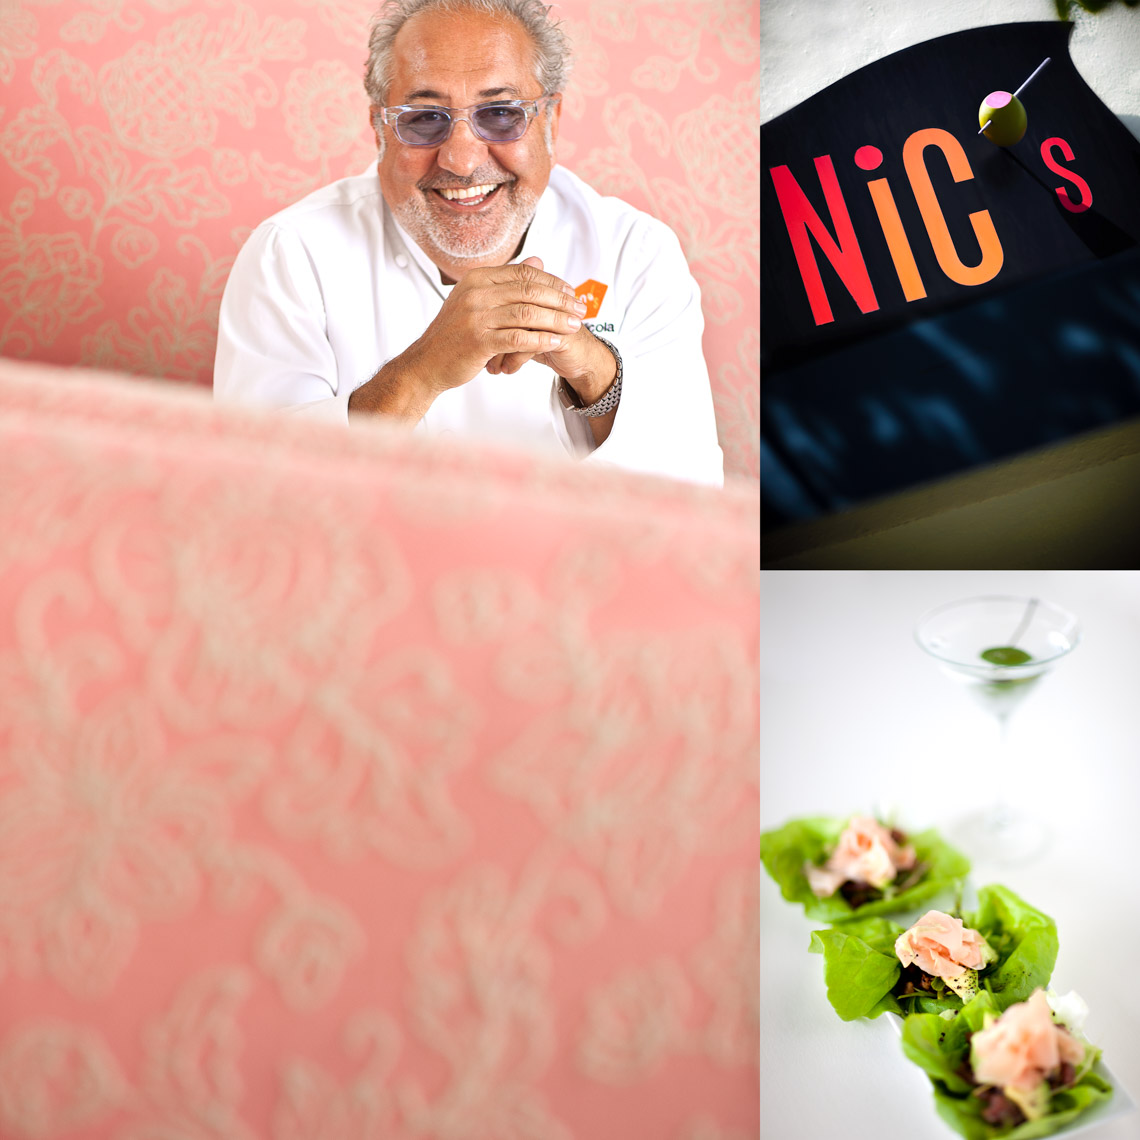 Los Angeles Photographer | Dana Hursey Photography | Top Chef Photography | Larry Nicola - Nic